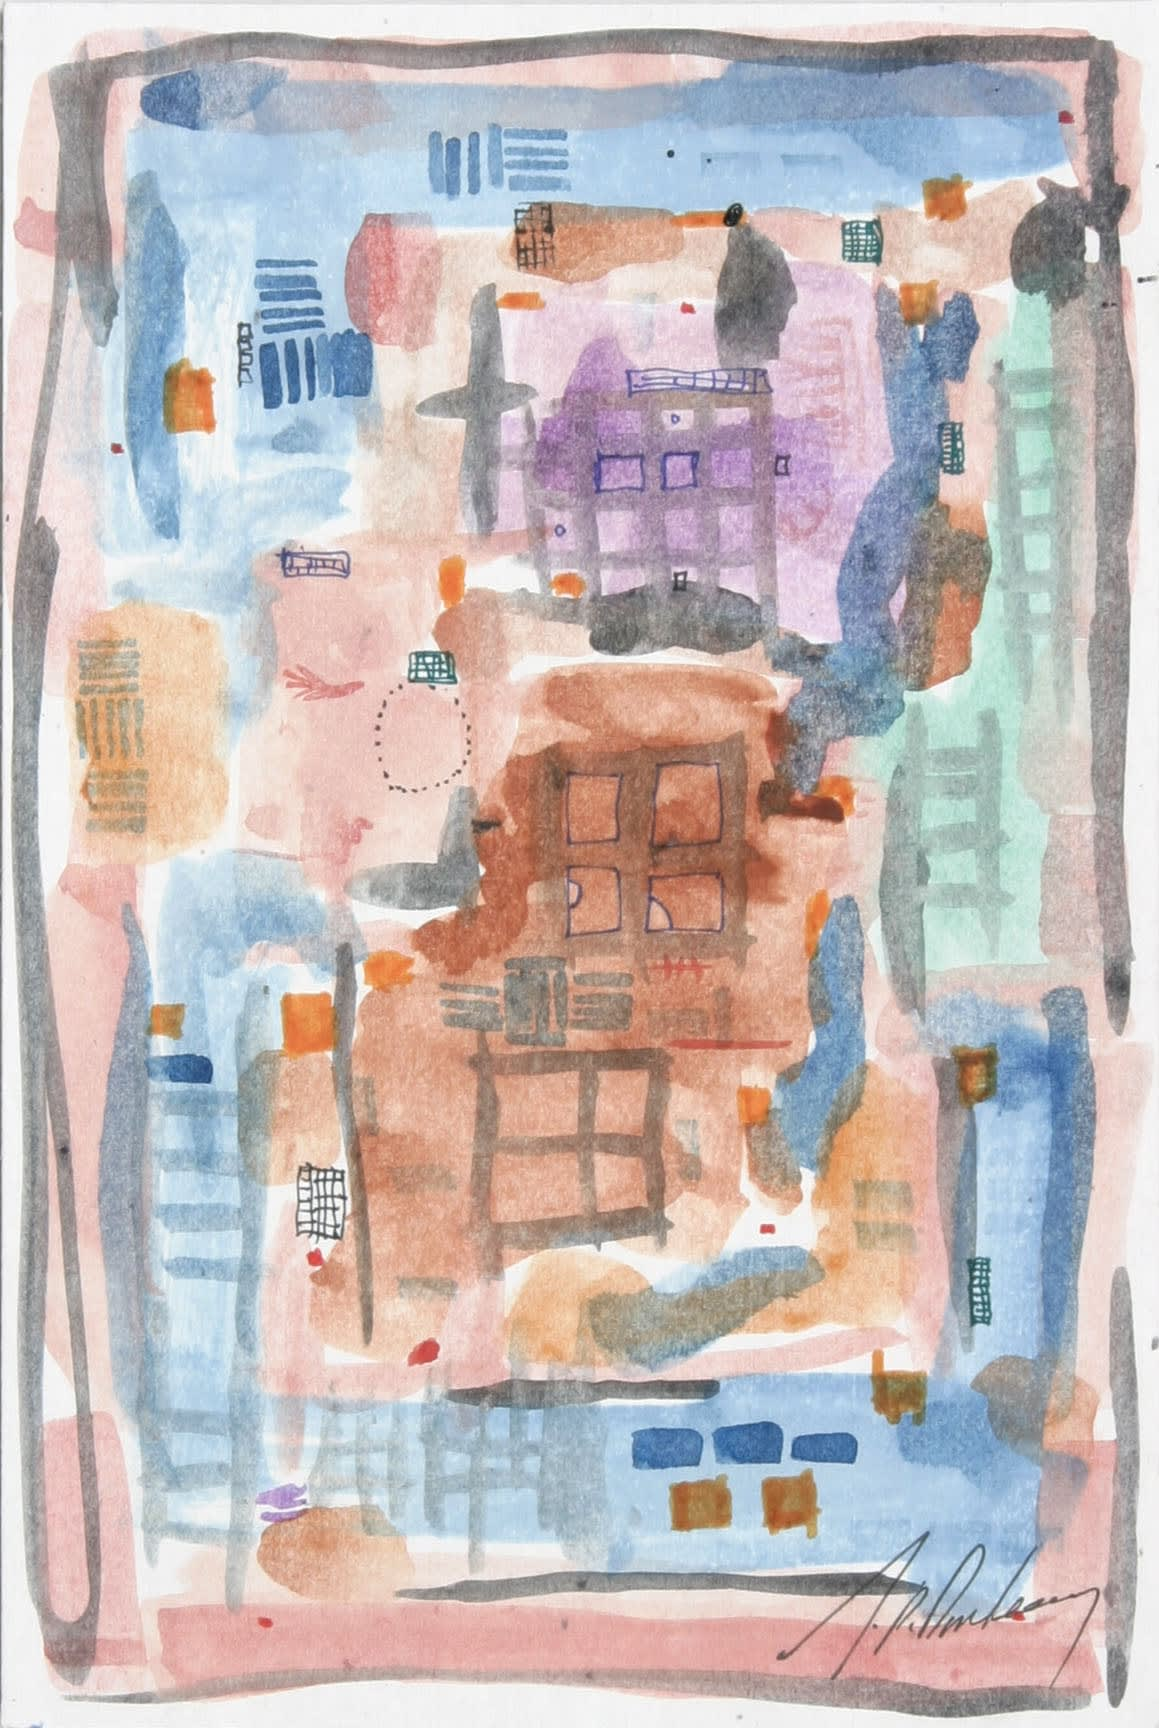 J.P. Donleavy Park Avenue and Sixty Seventh Watercolour with pen & ink 23 x 15 cm